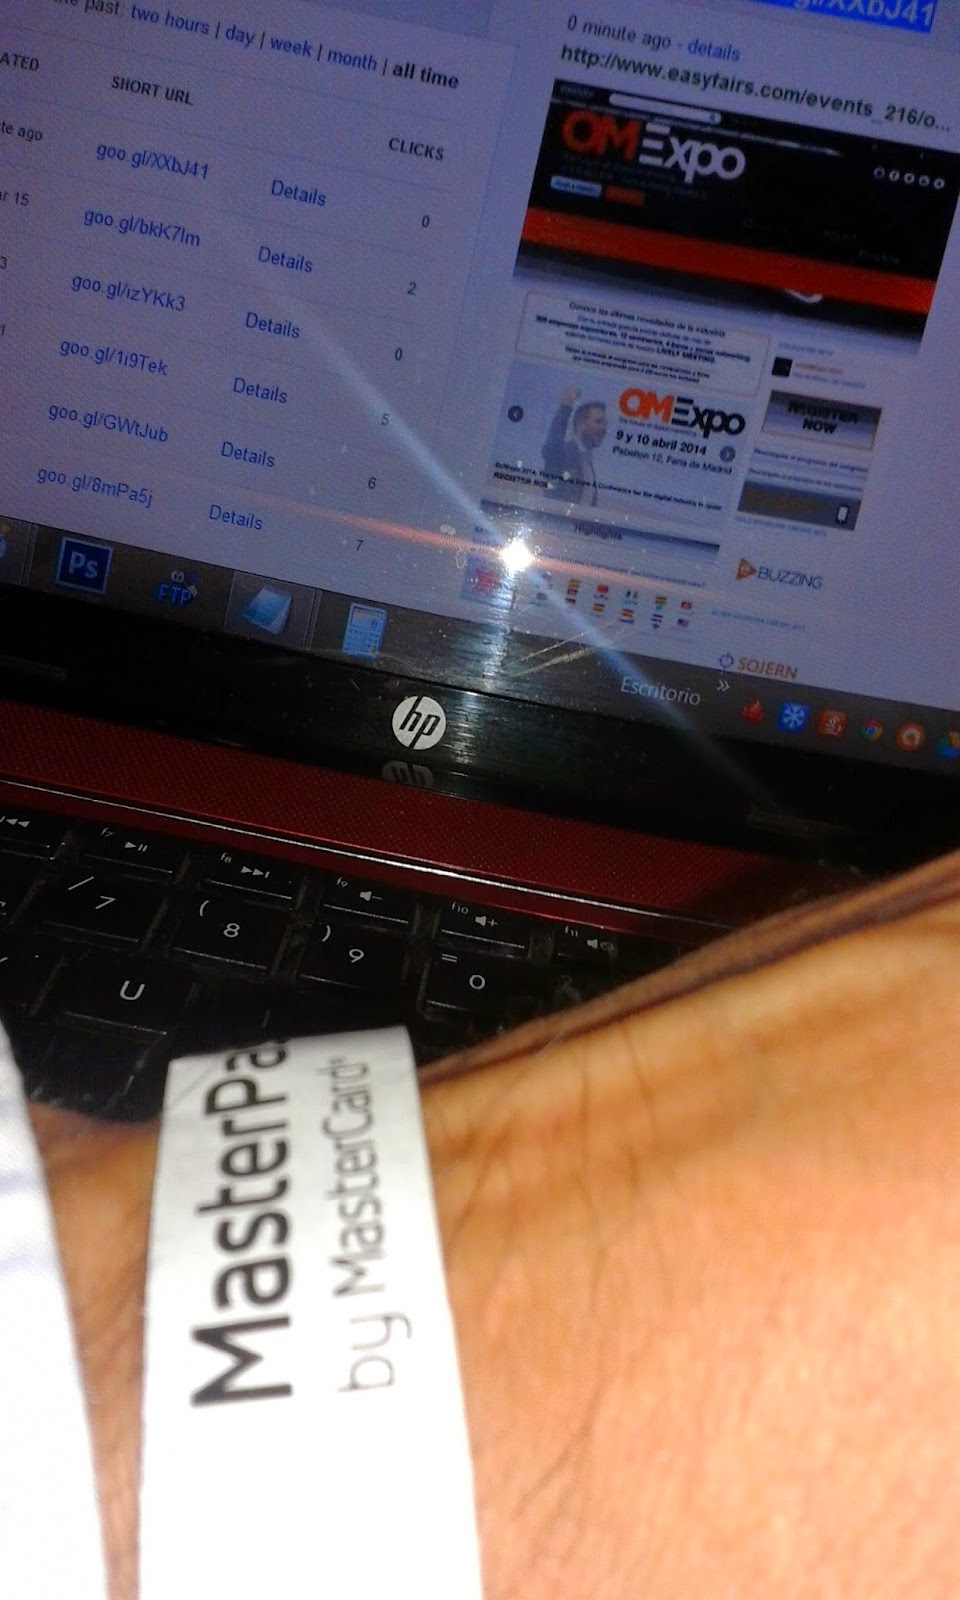 Pulsera de OMExpo Curso Google AdWords Abril 2014 Madrid